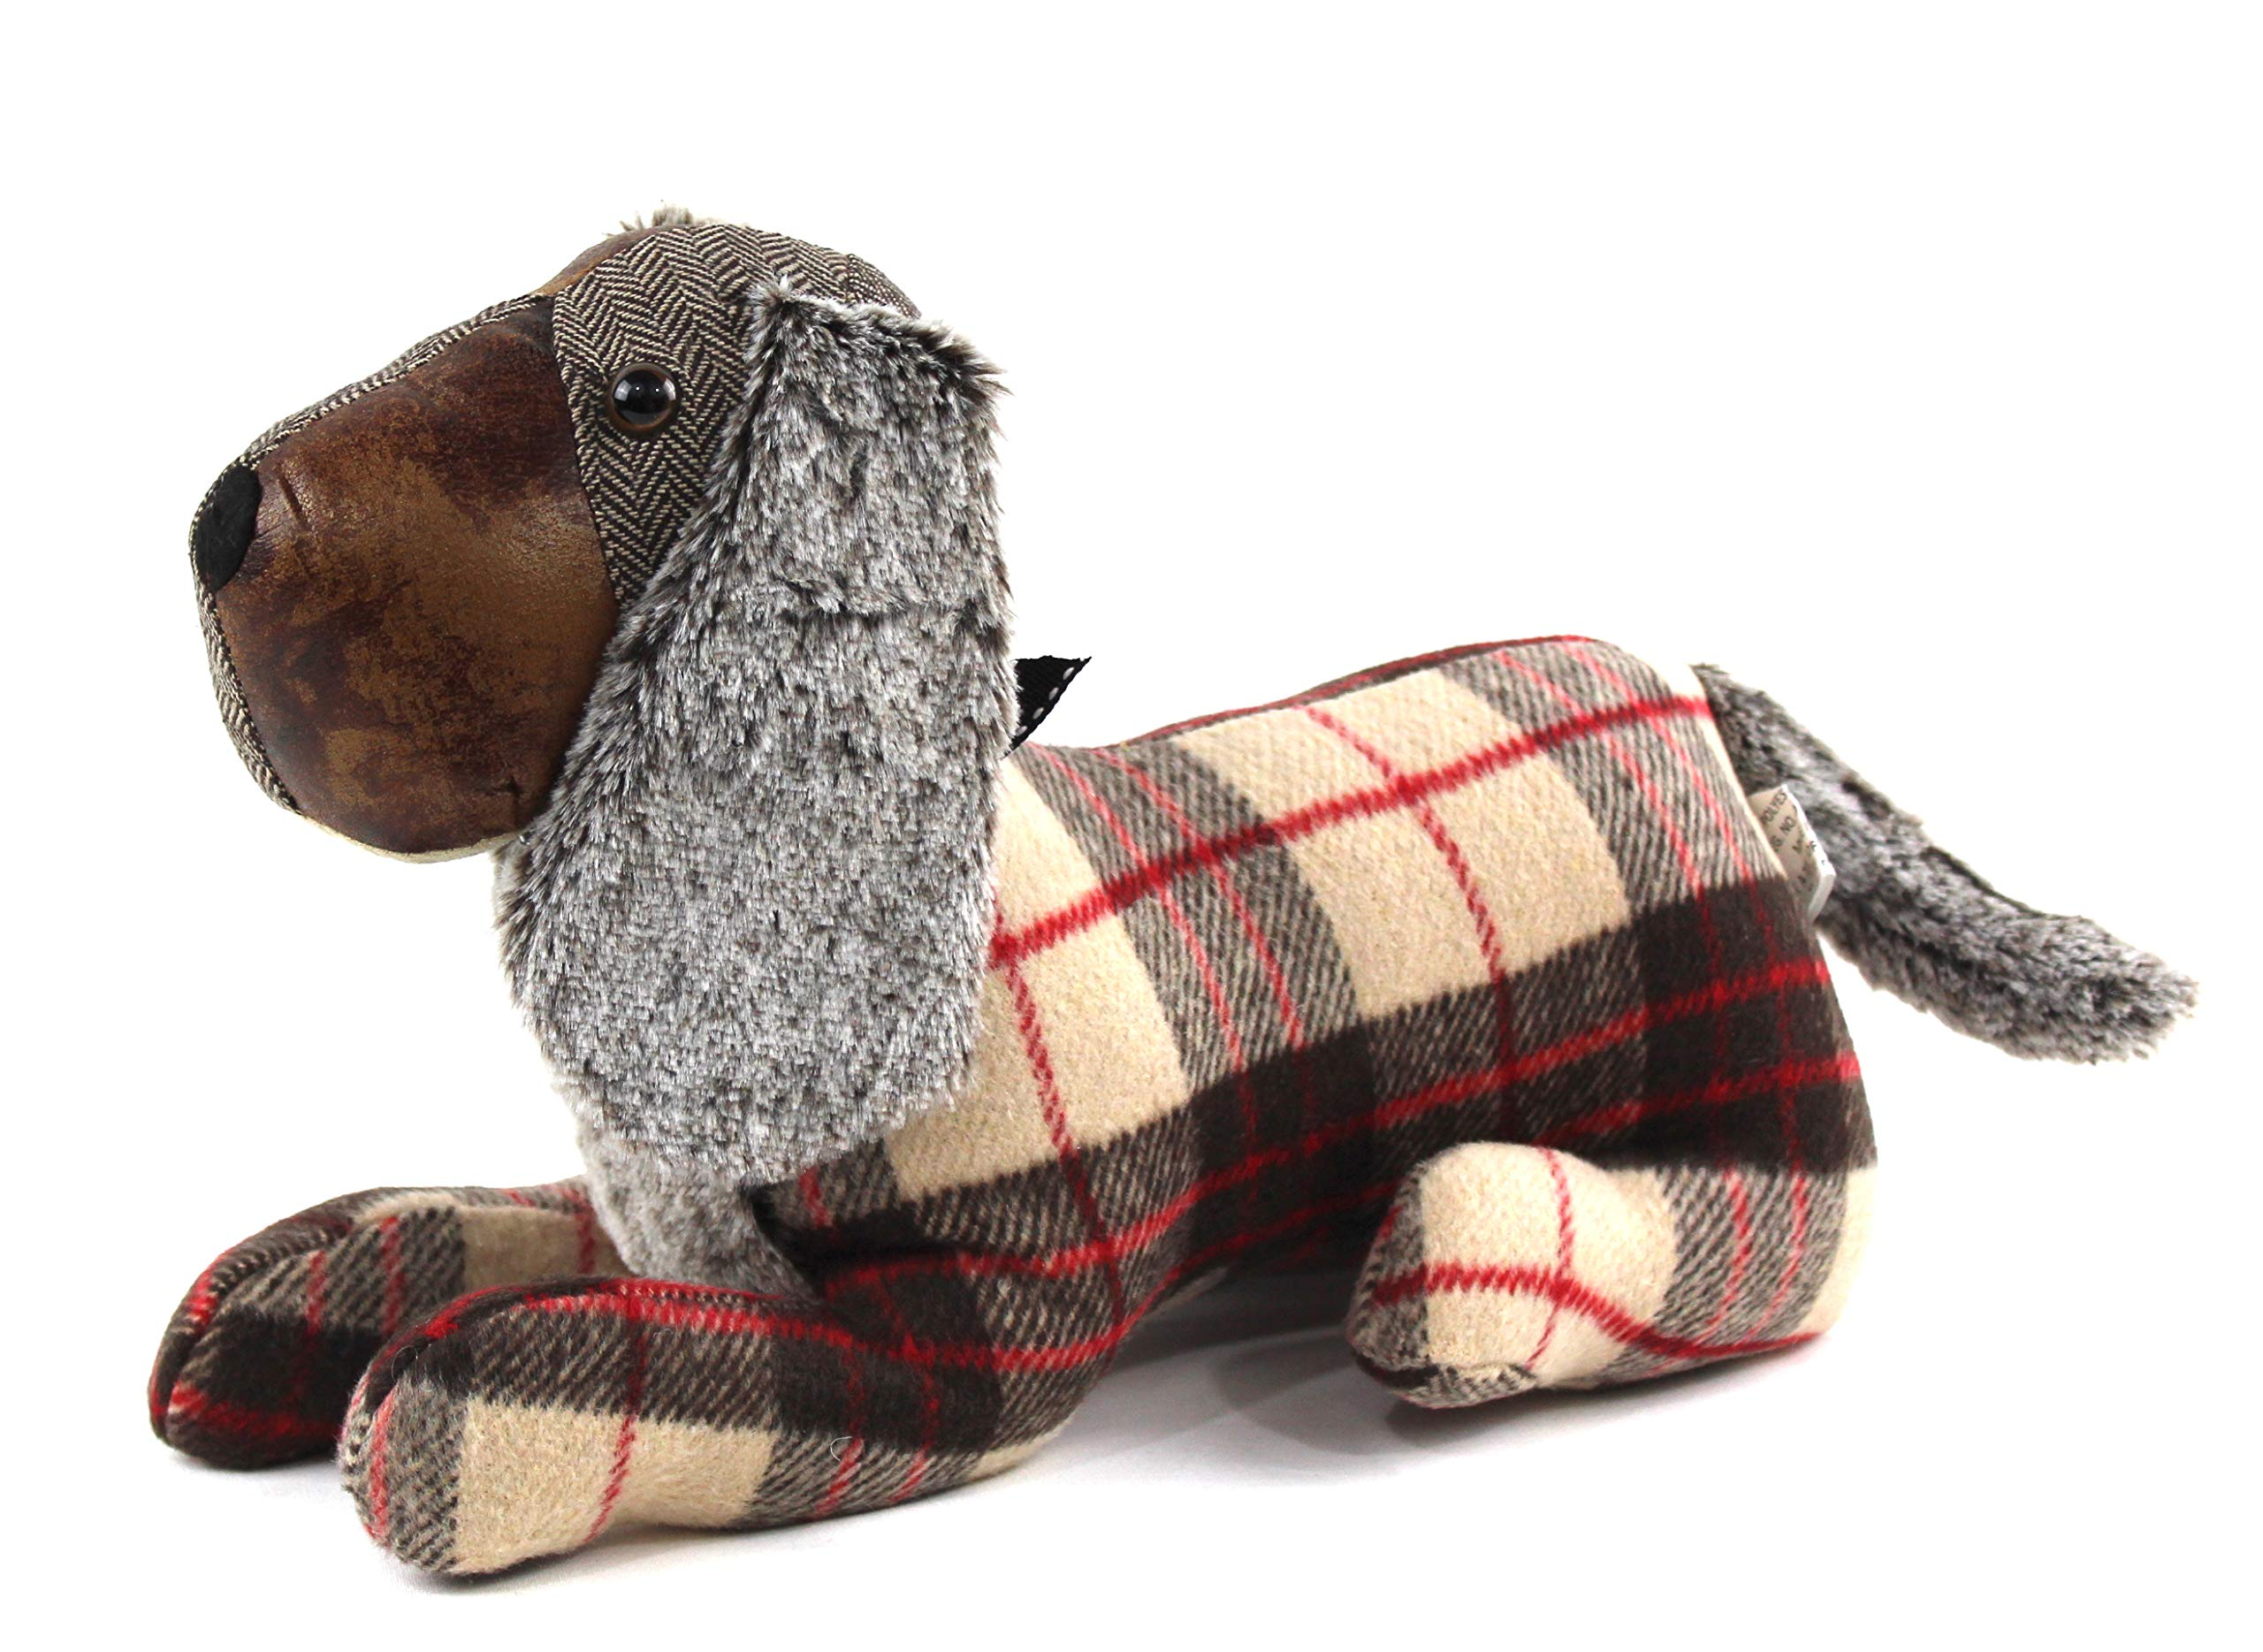 Decorative Door Stopper: Cute and Sophisticated Dog Mutli Textured Design (Dachshund)